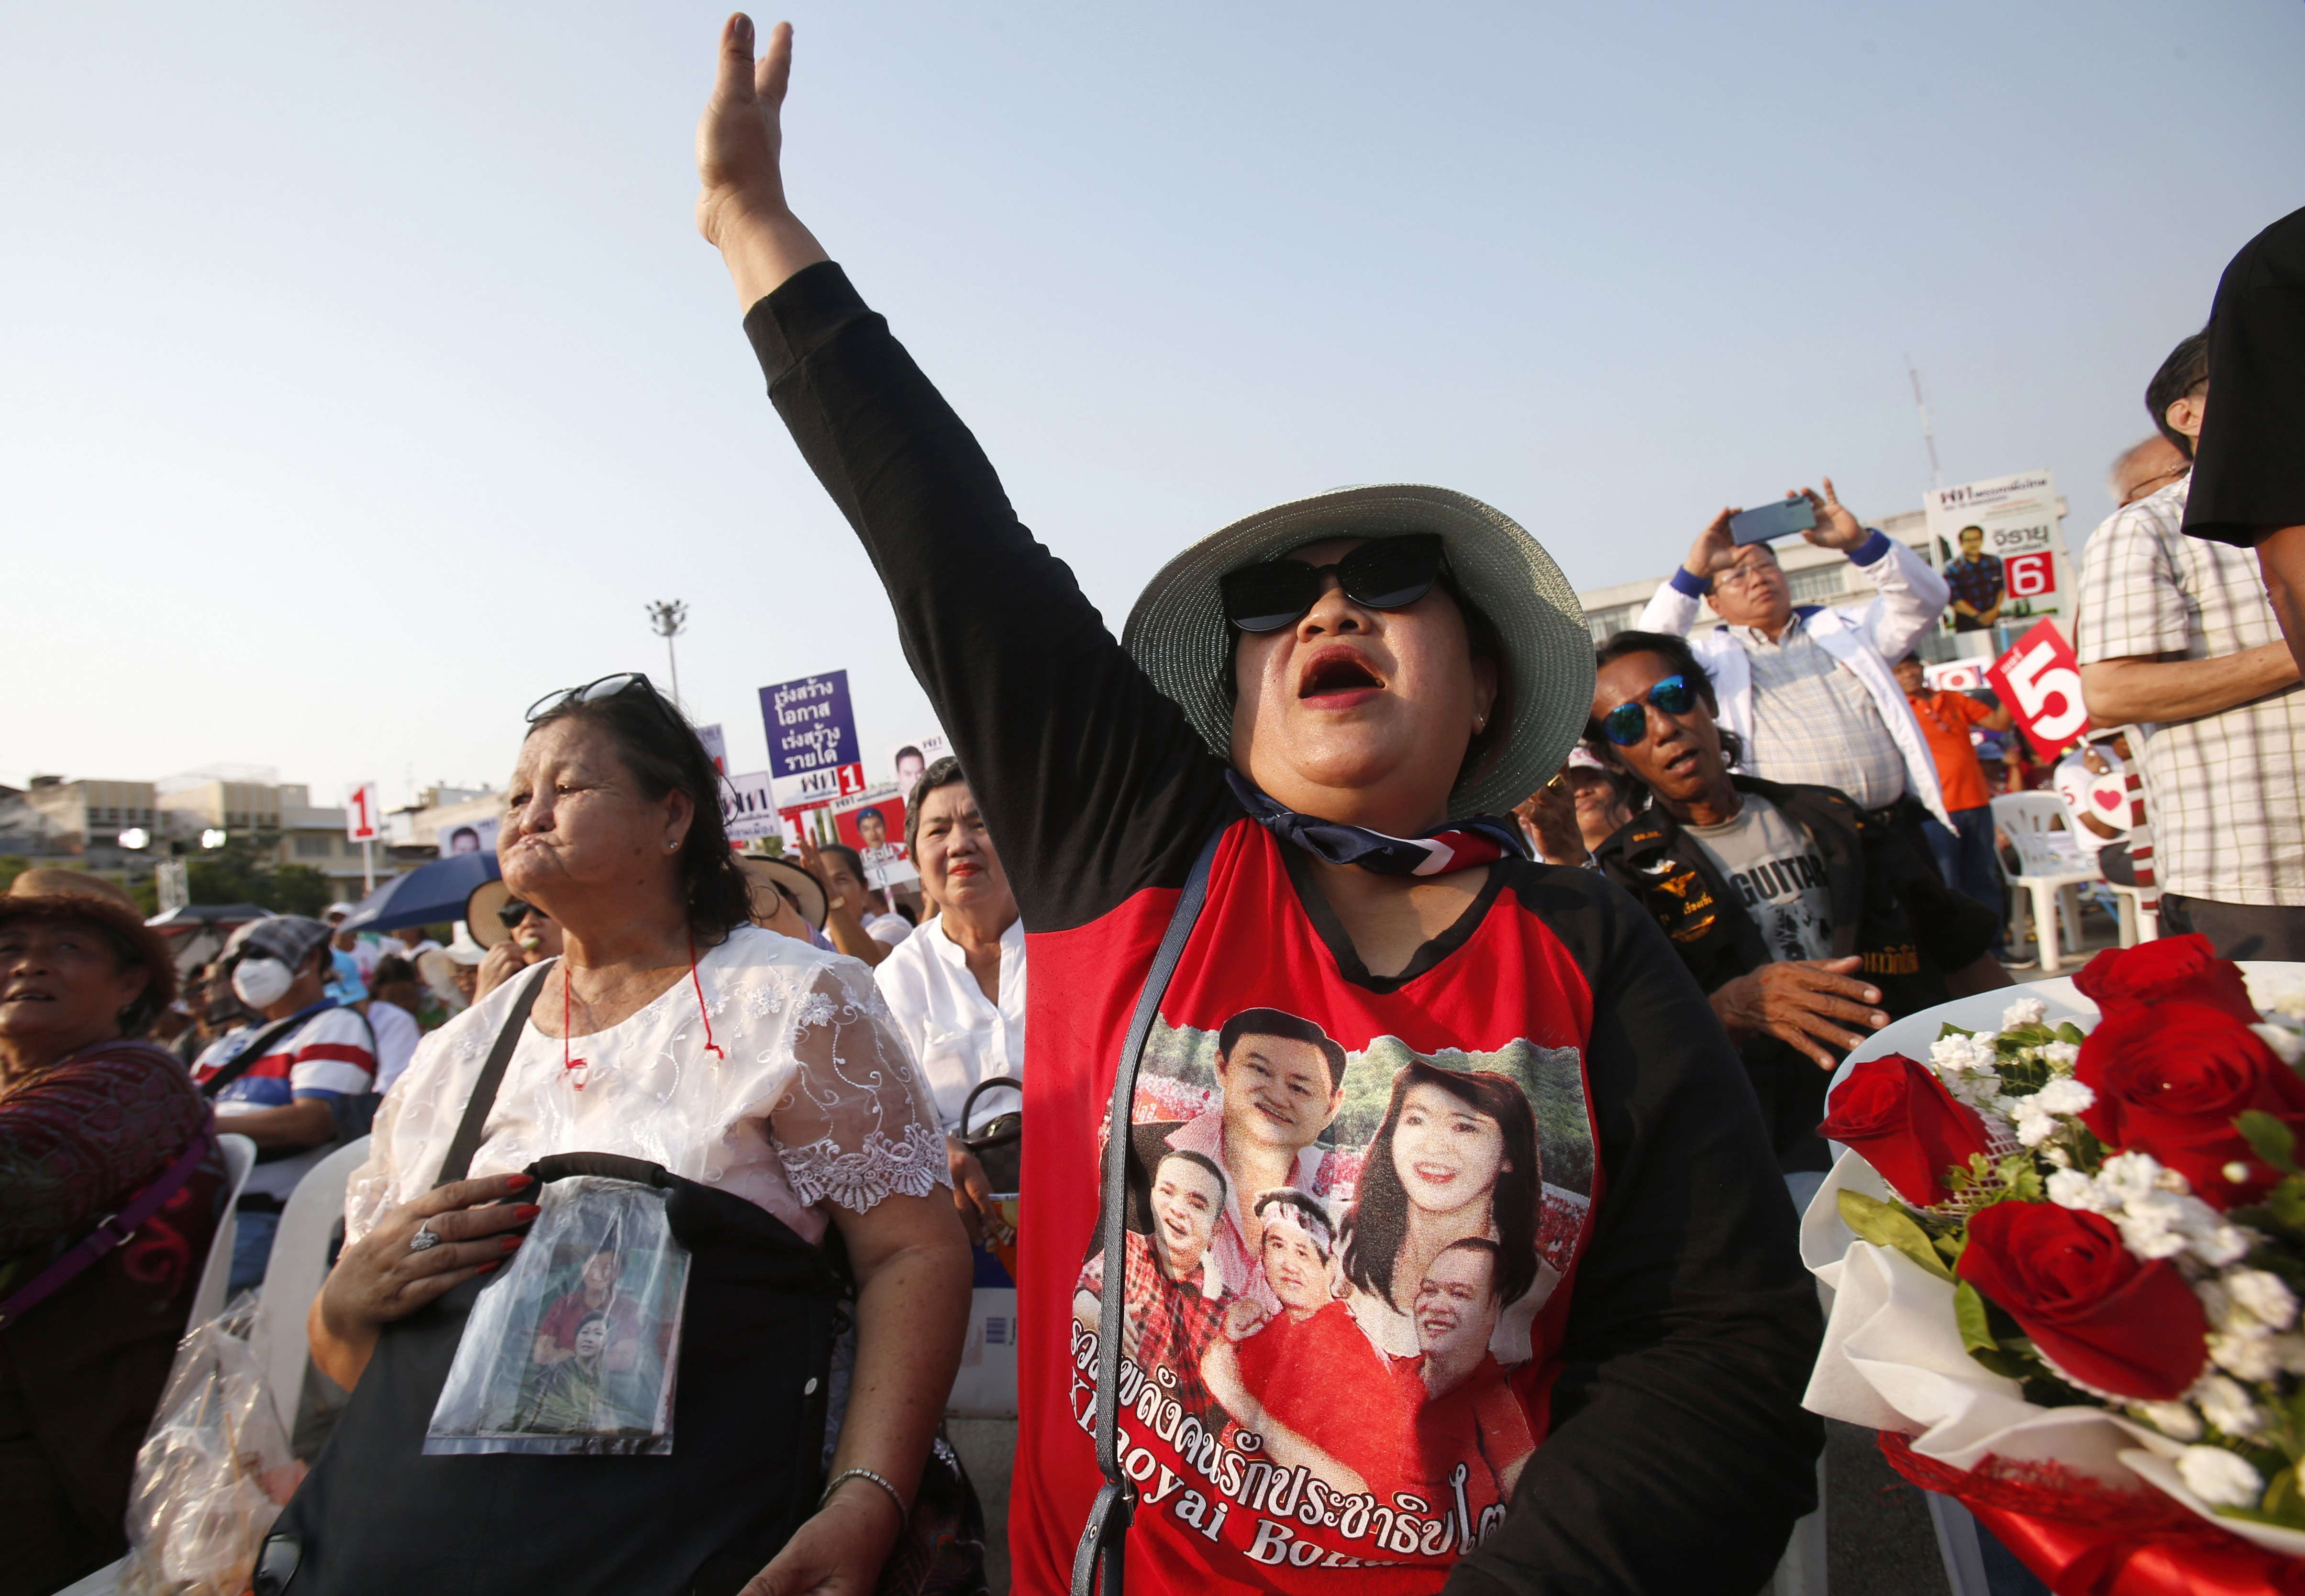 Explained: Thailand's politics and monarchy | South China